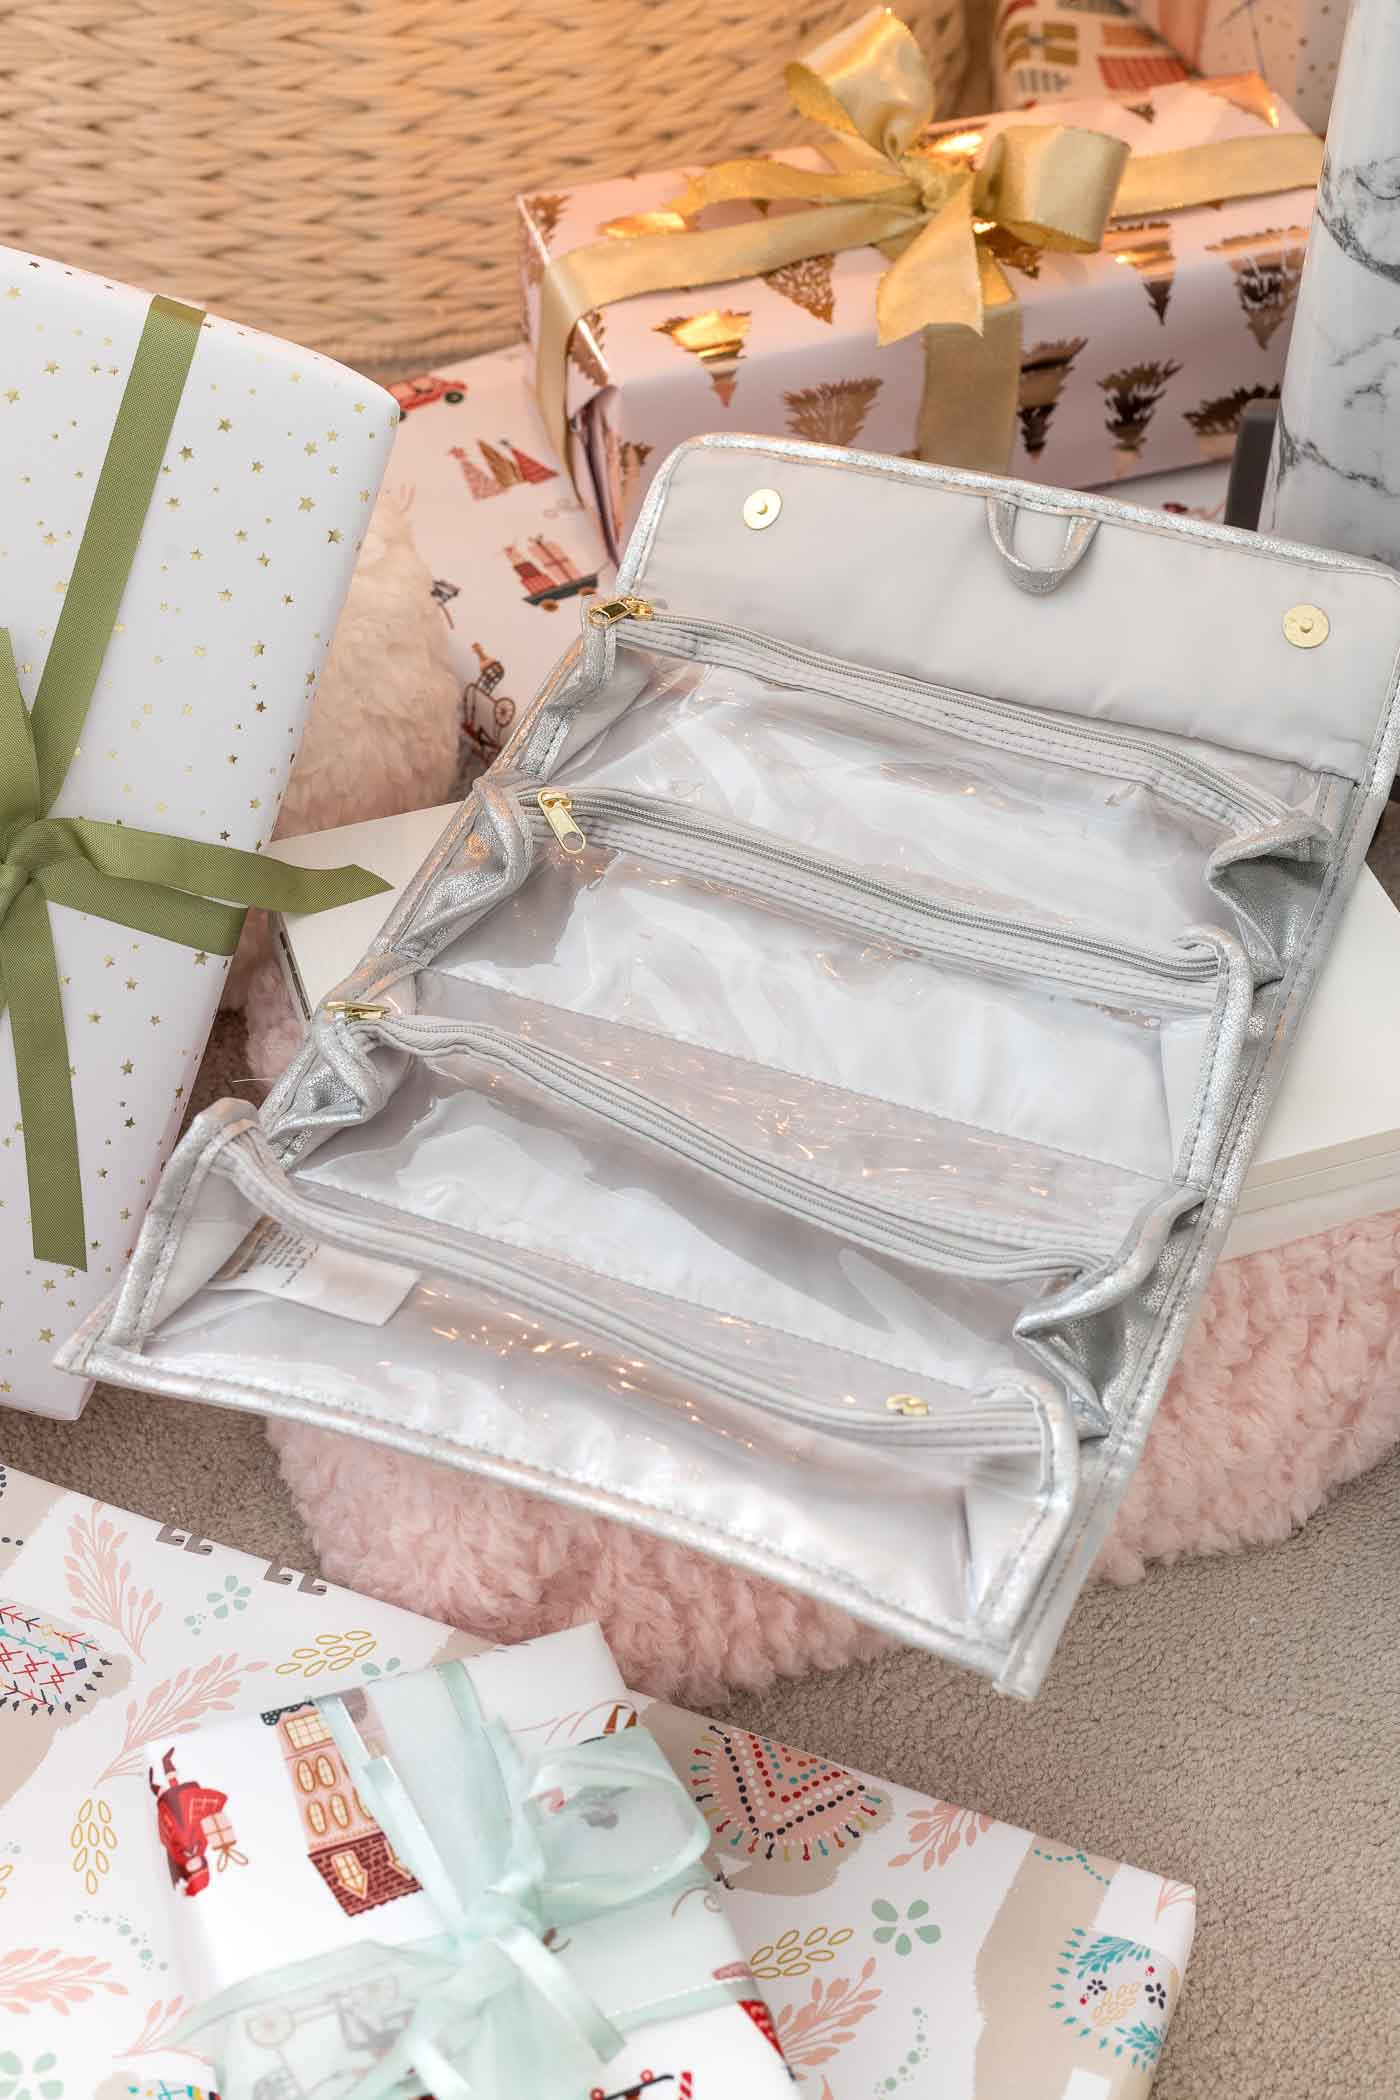 Roll-up toiletry bag that's a perfect Christmas gift idea for teen girls!